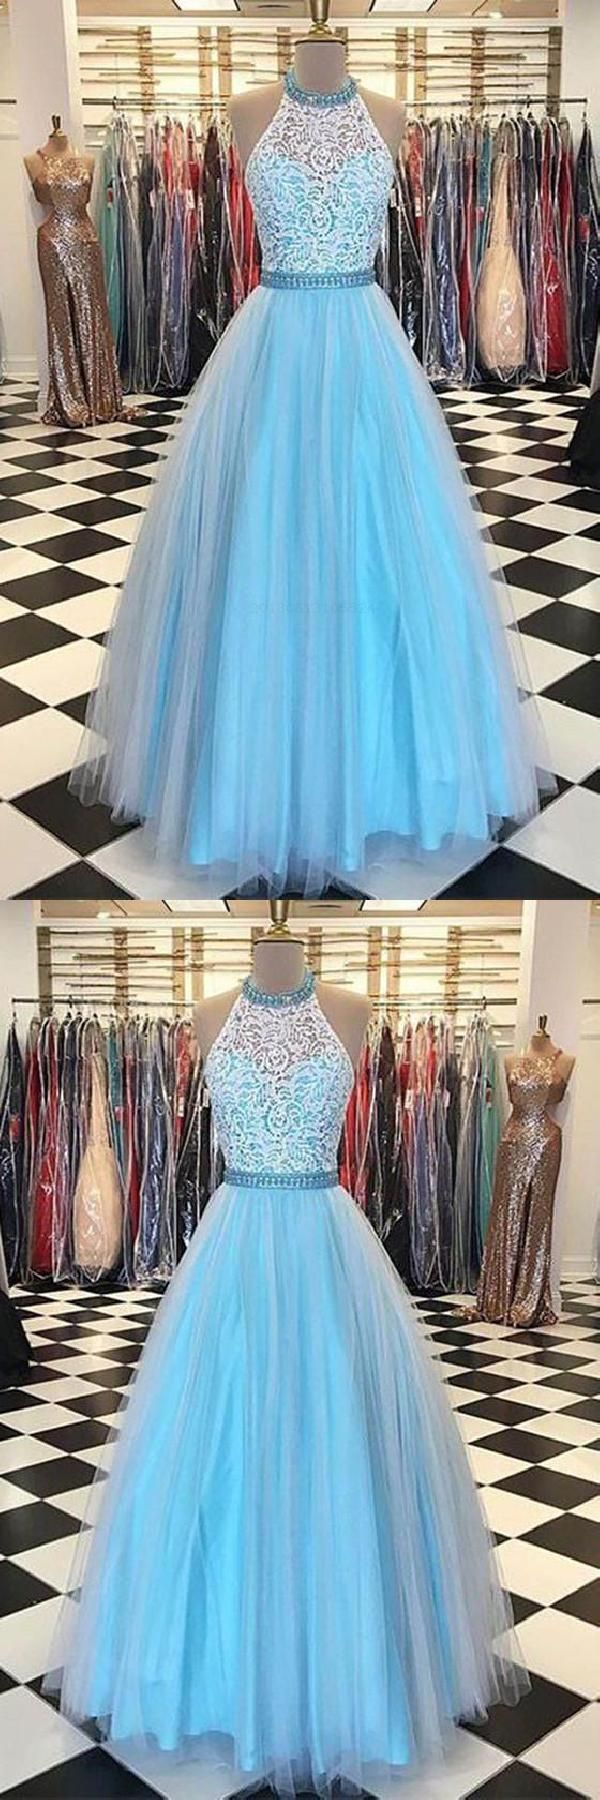 Custom made dazzling aline prom dresses sleeveless prom dresses